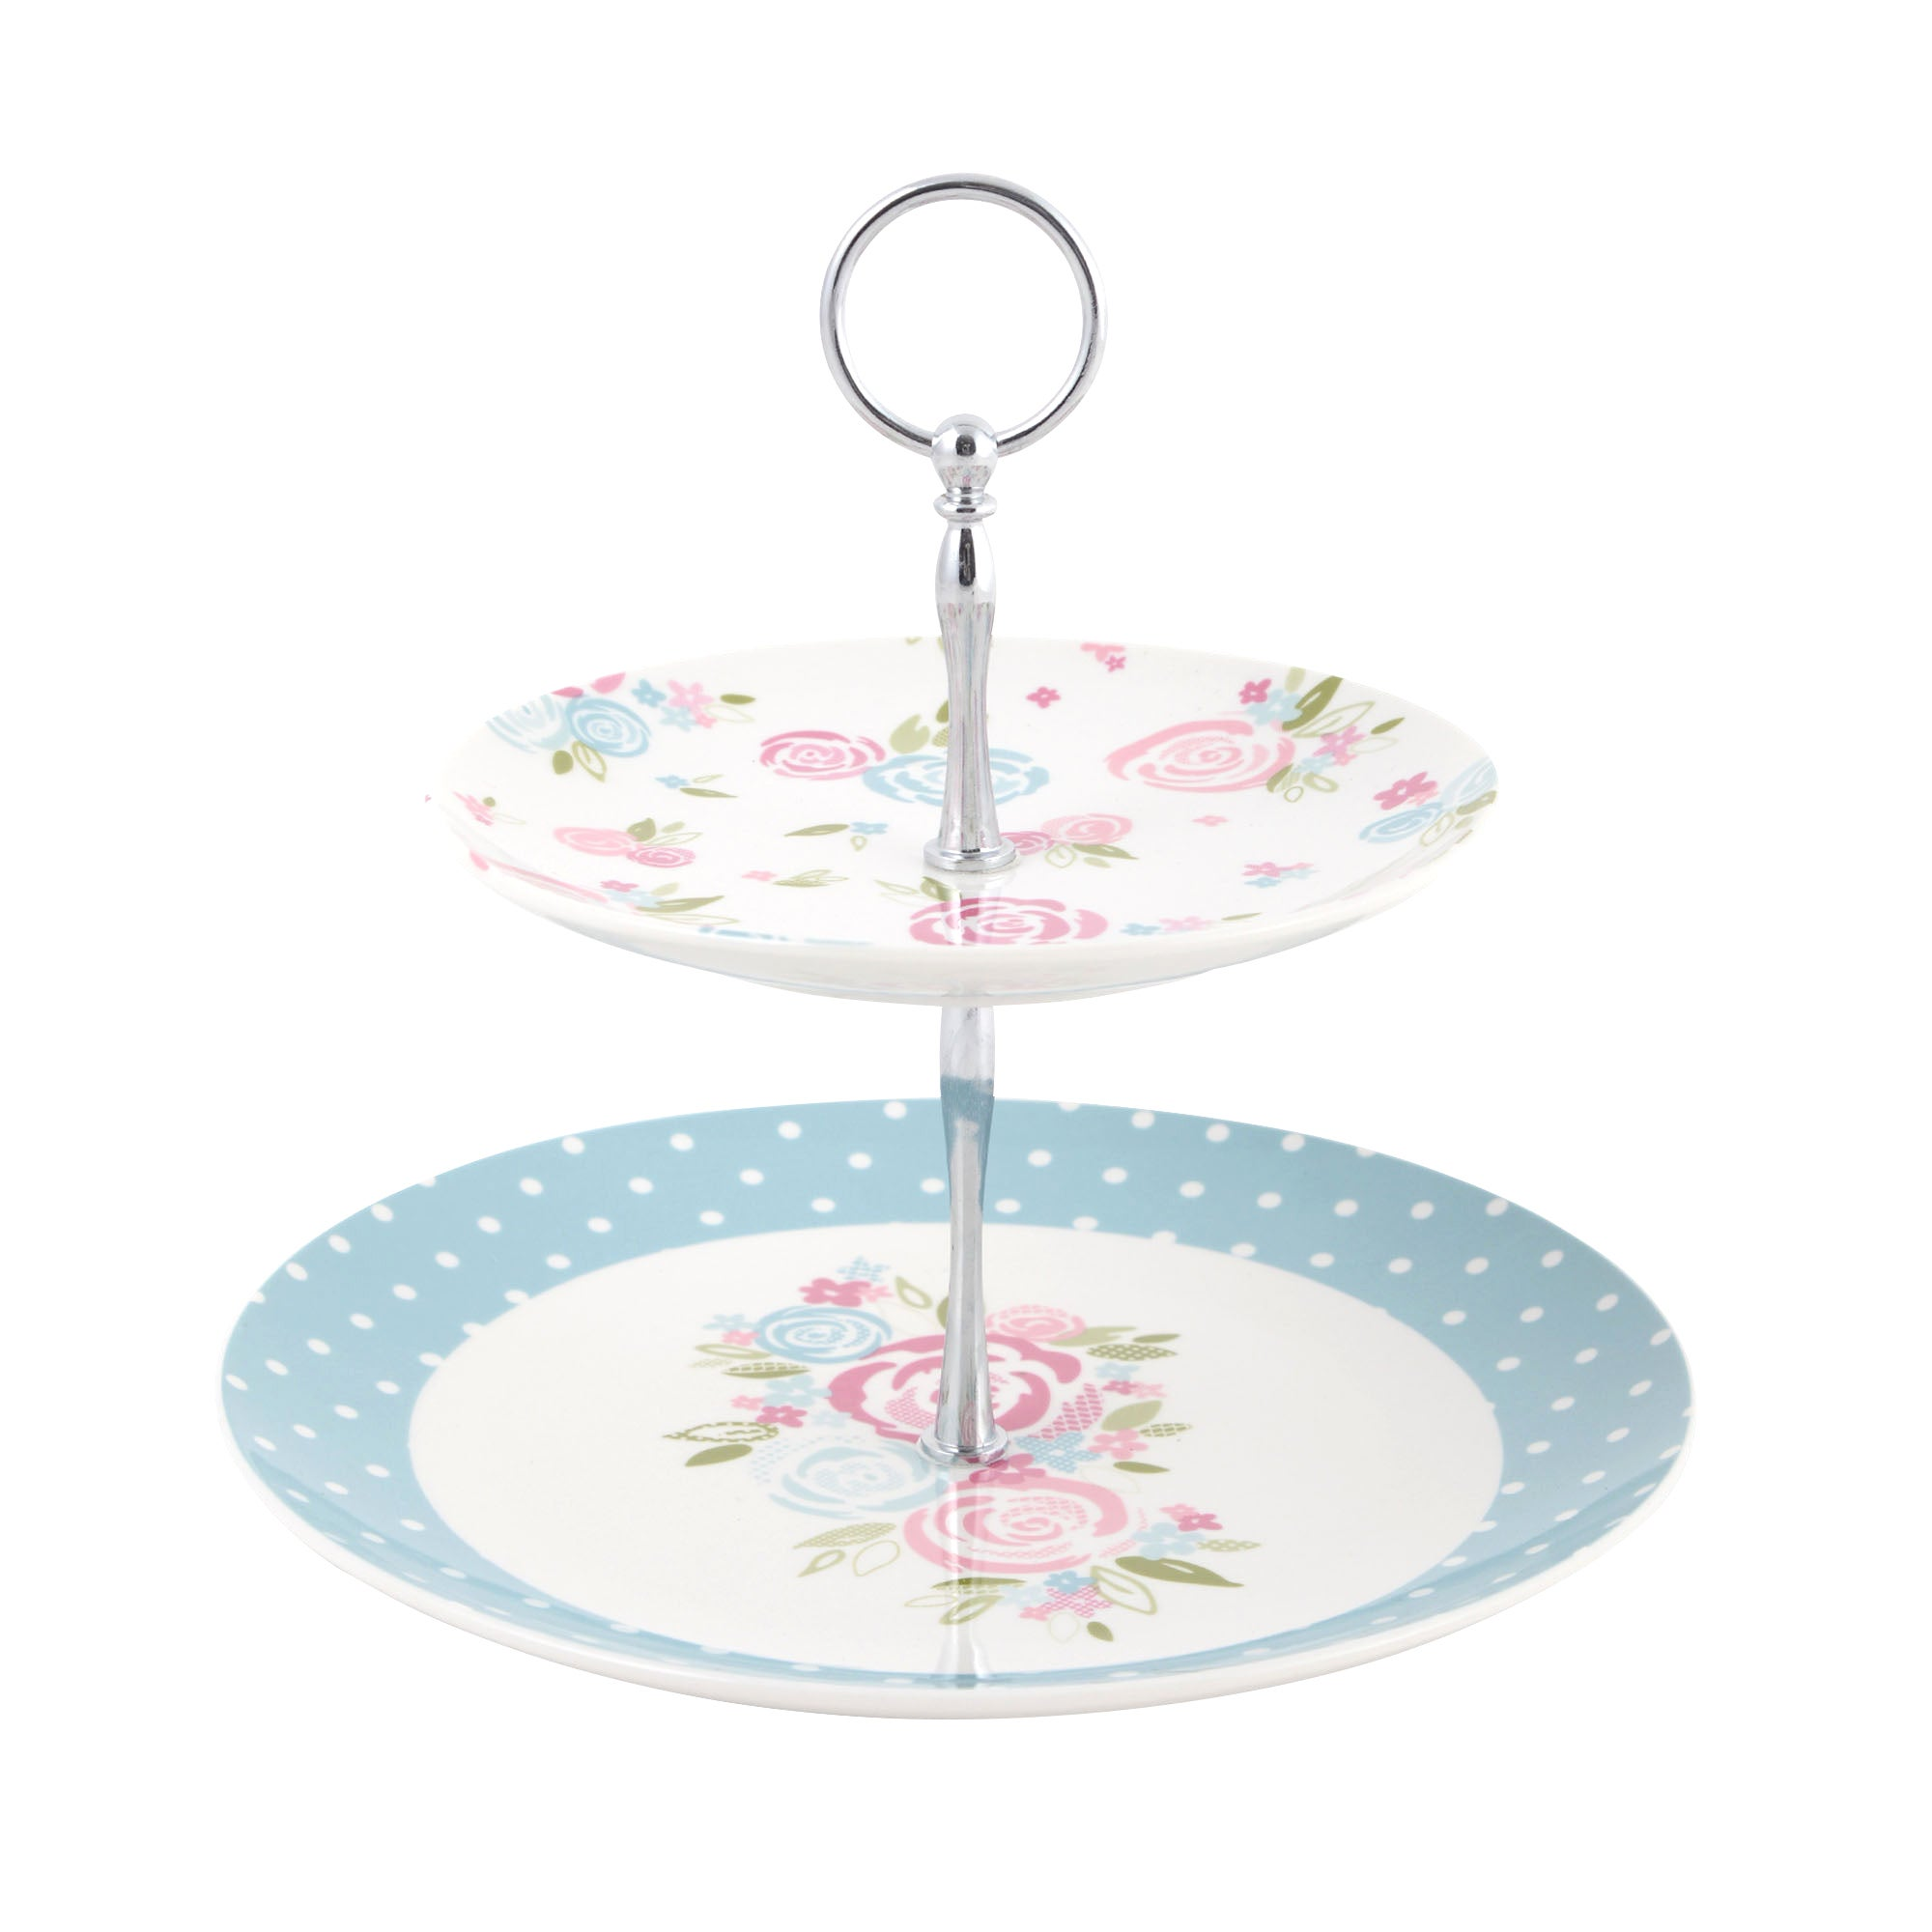 Image of Candy Rose Two Tier Cake Stand Blue / Pink